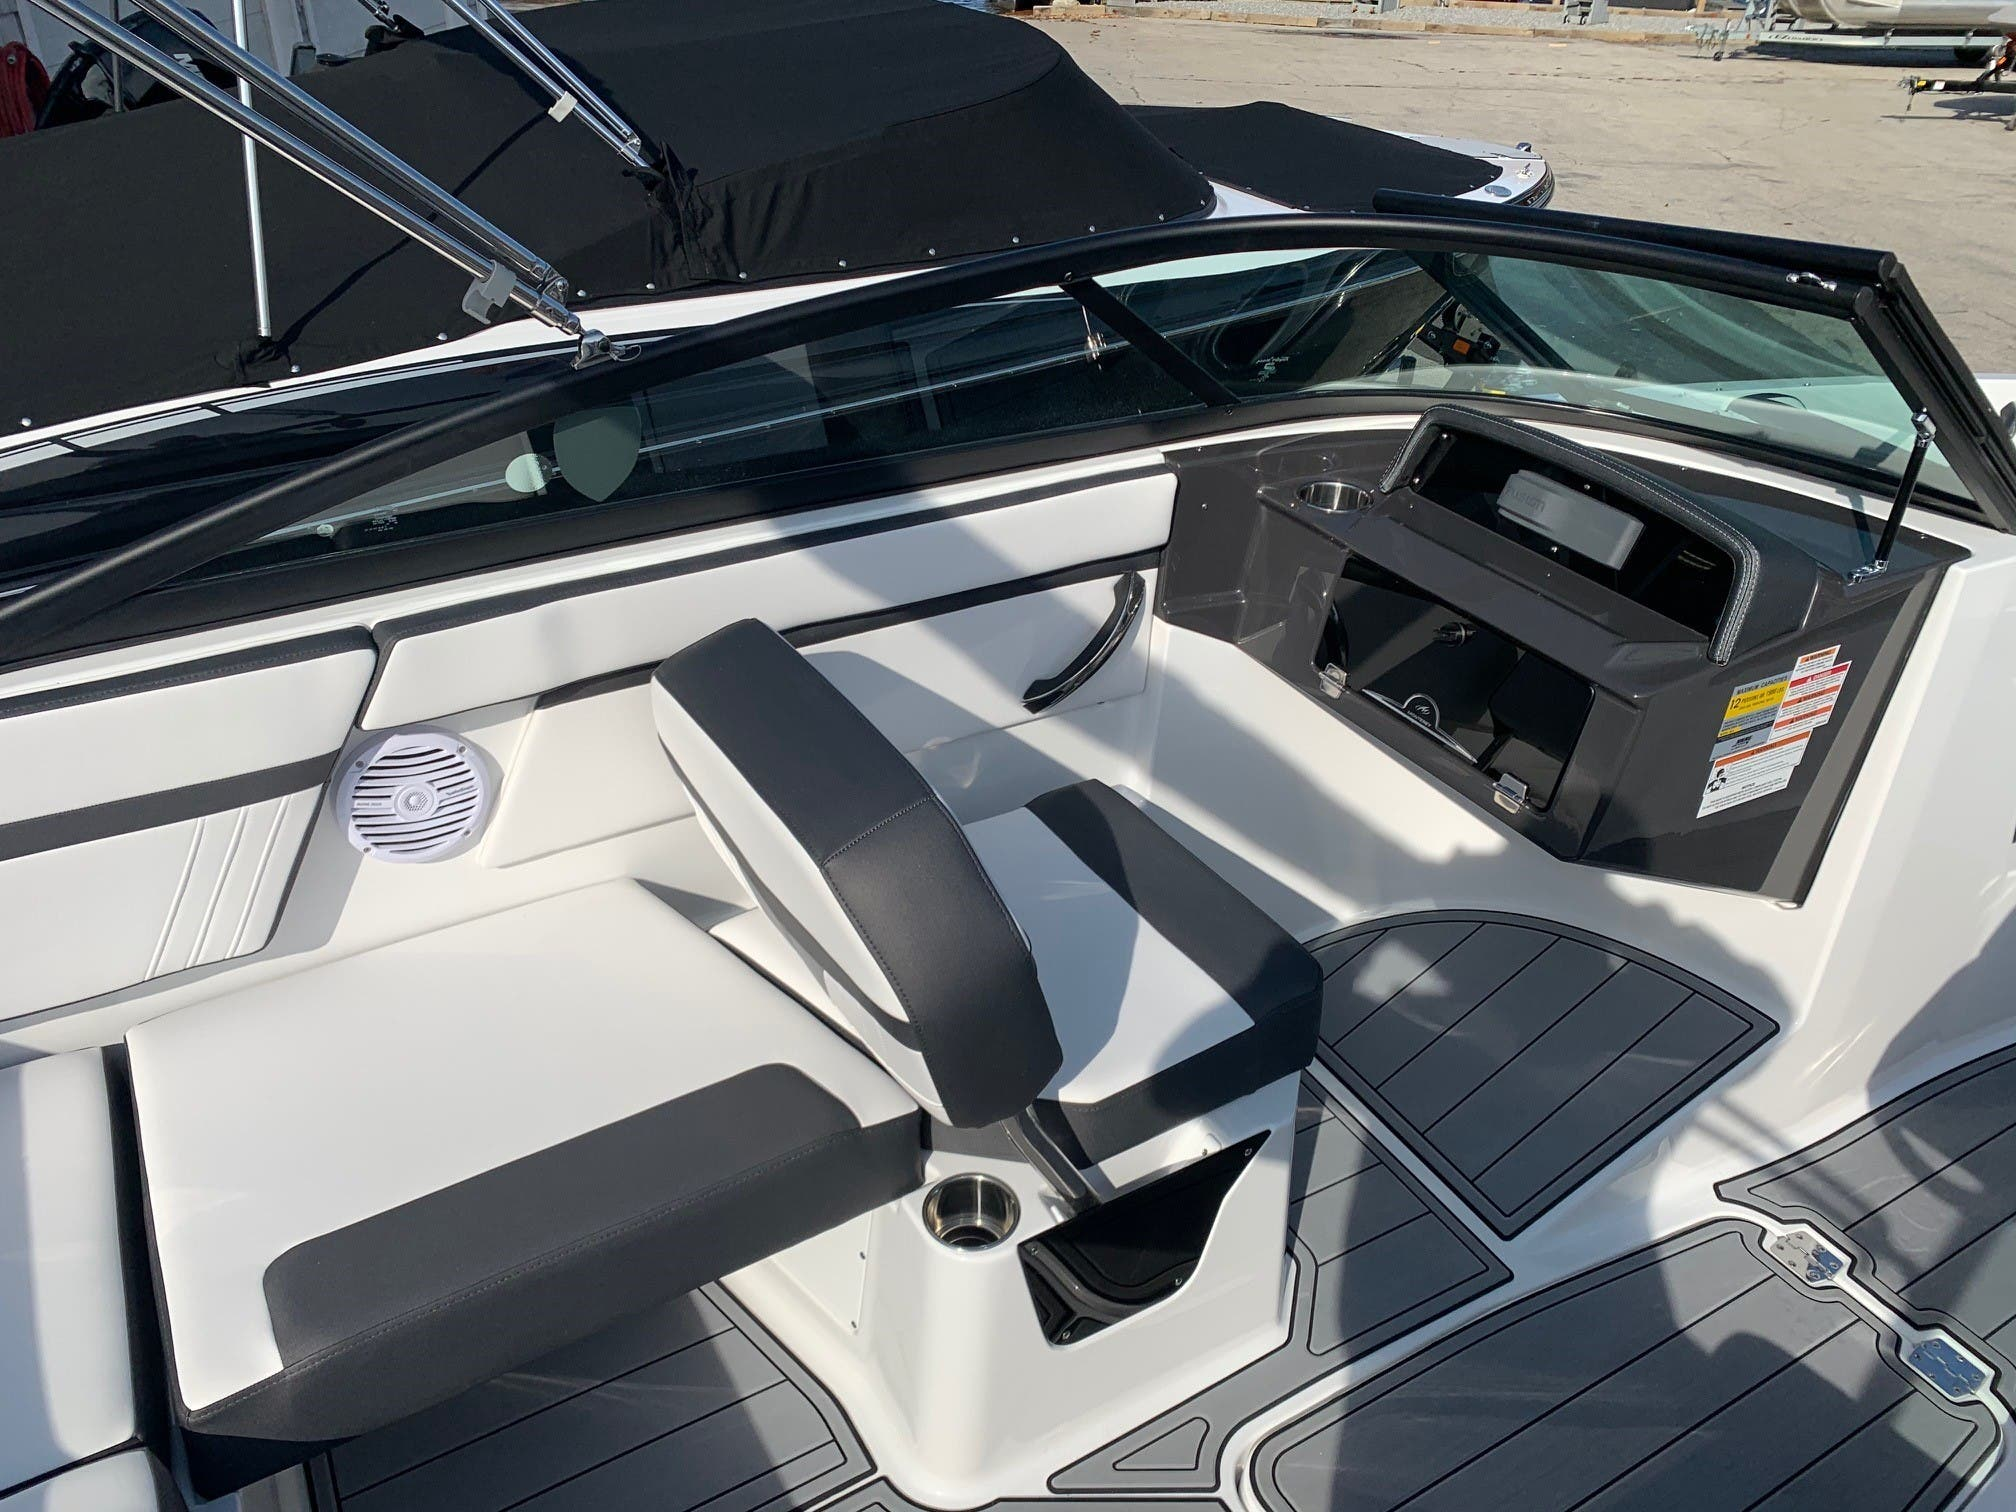 2021 Monterey boat for sale, model of the boat is M 22 & Image # 5 of 13